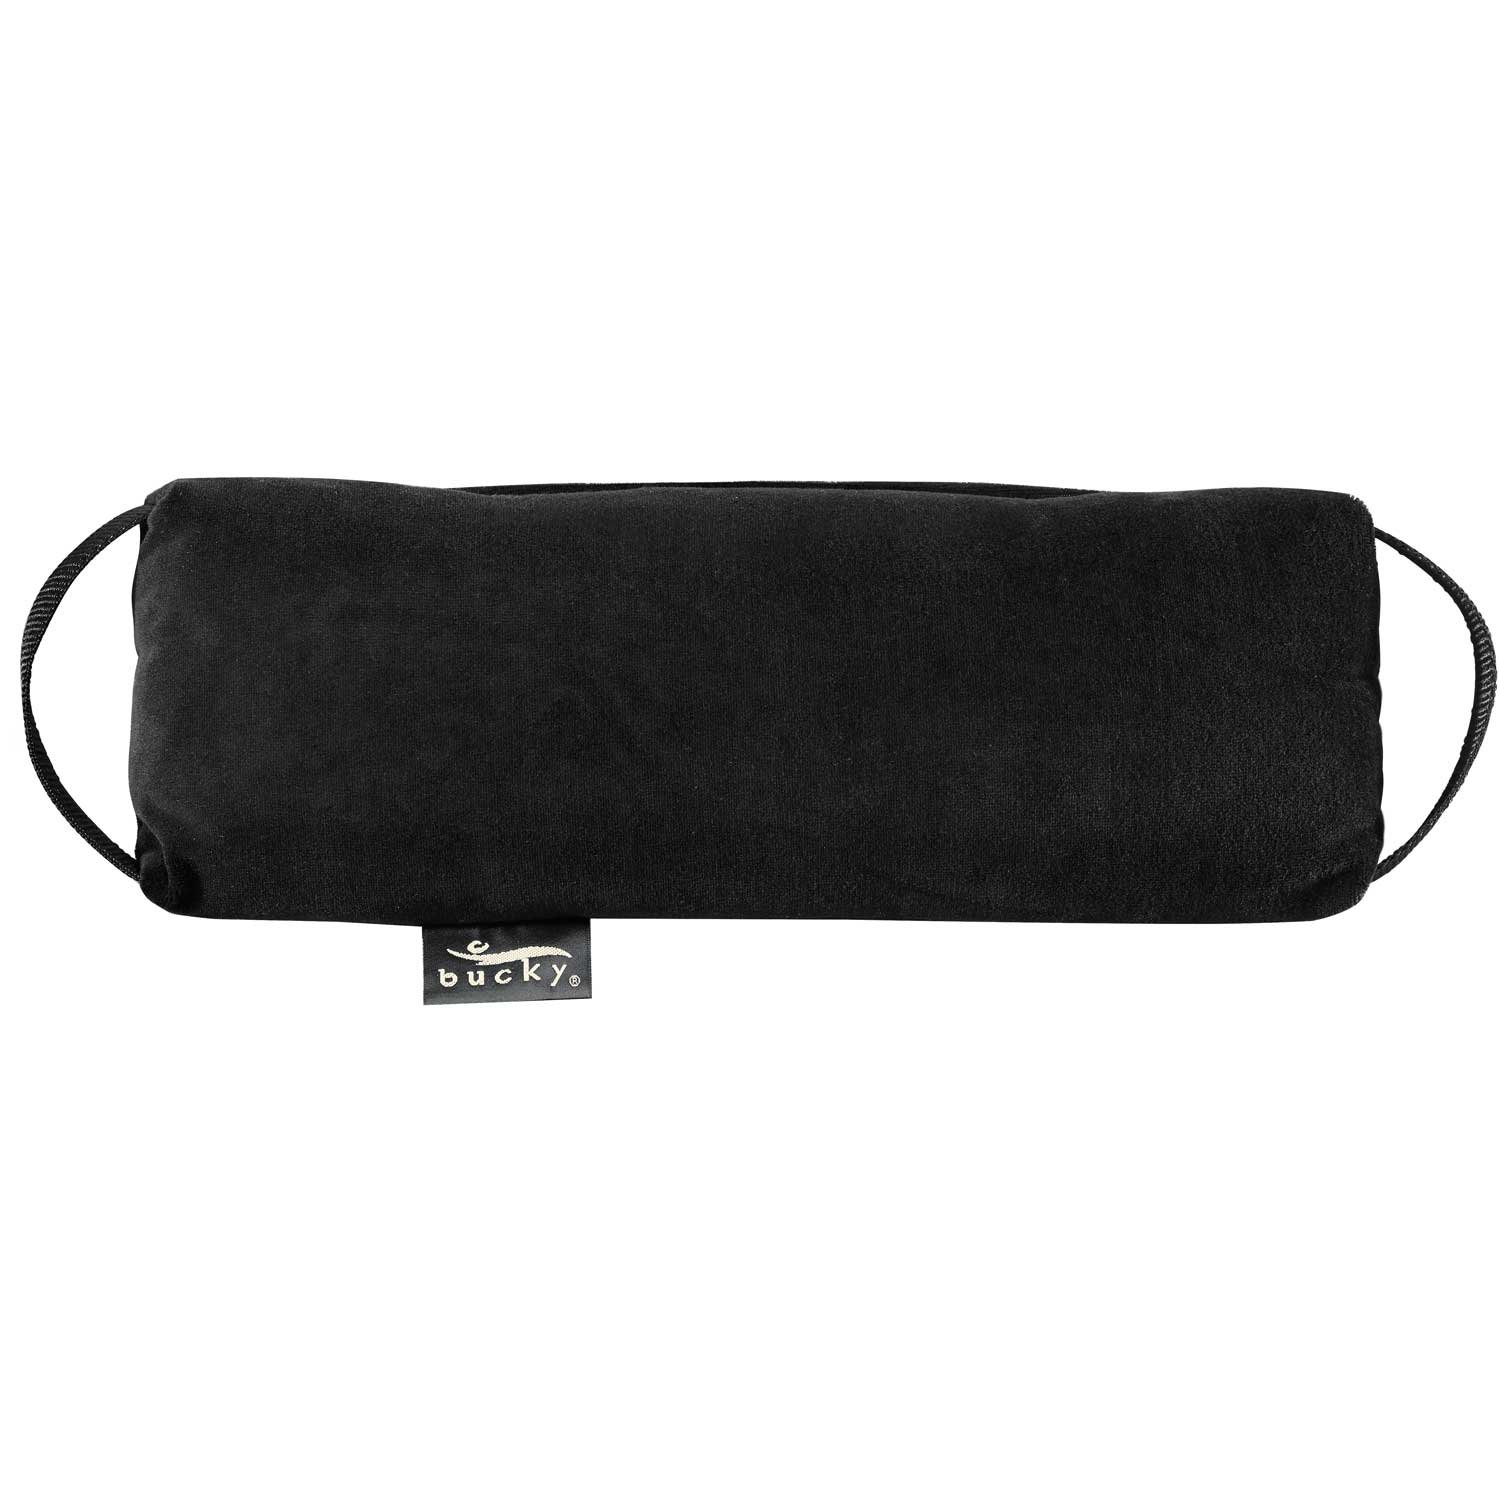 Bucky Baxter Lumbar Pillow, Ergonomic and Supportive, All Natural Buckwheat Hulls, Removable Cover, Adjustable Filling - Black